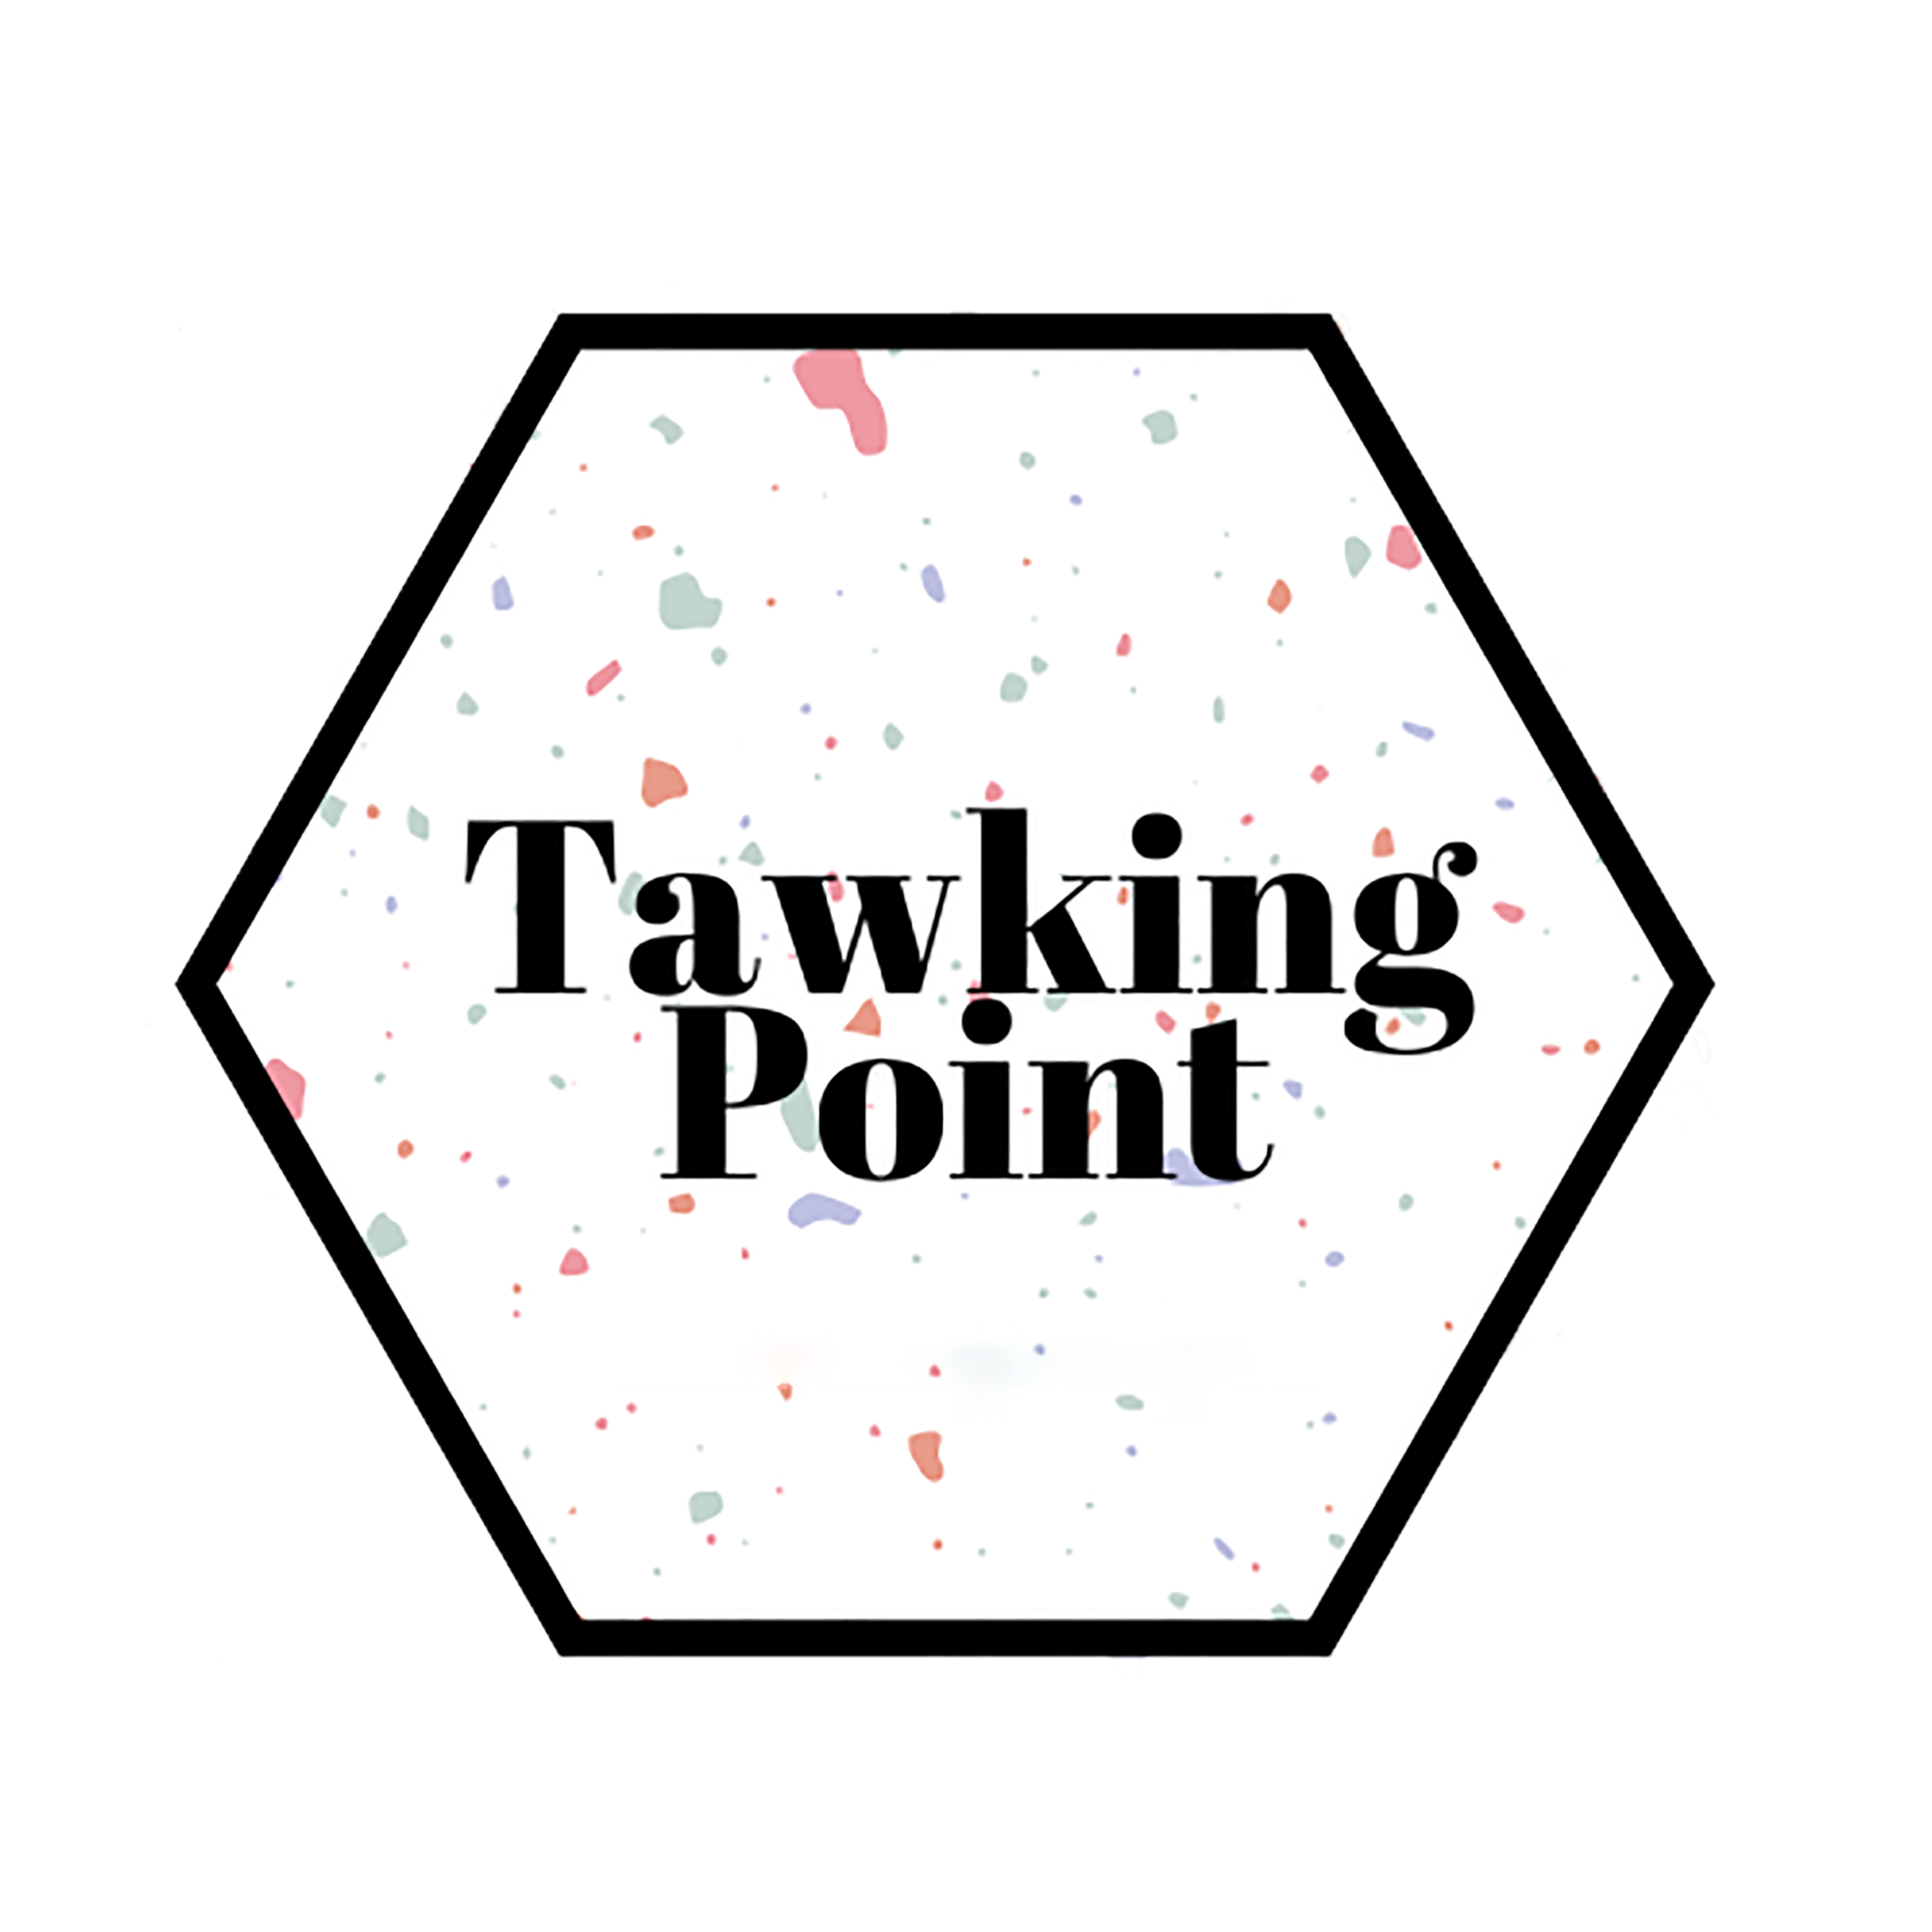 Tawking Point